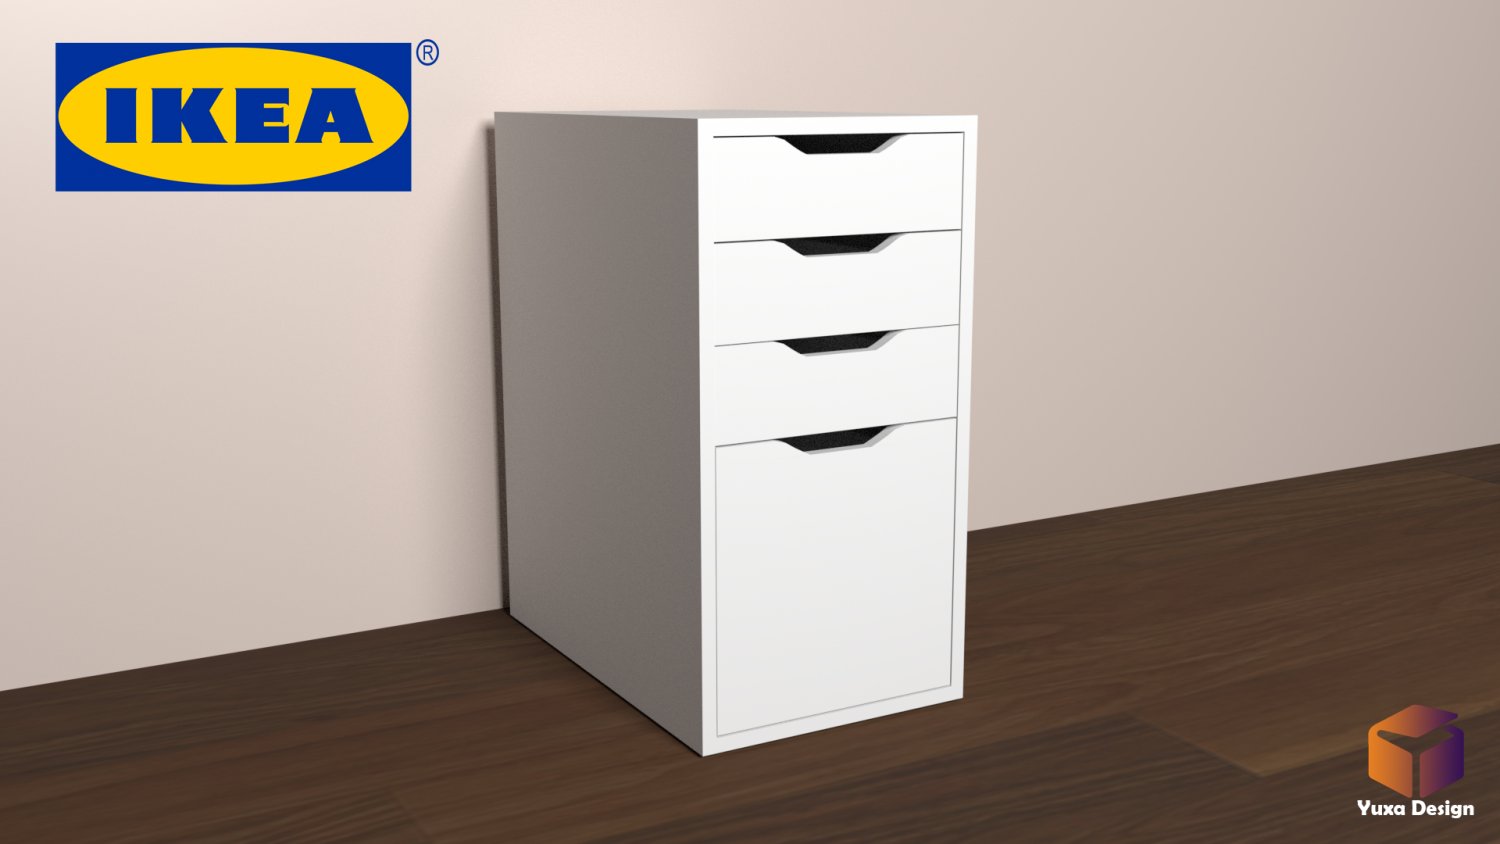 Ikea Alex Desk Drawer Unit - Drop File Storage 3333D Model in Desk 3333DExport